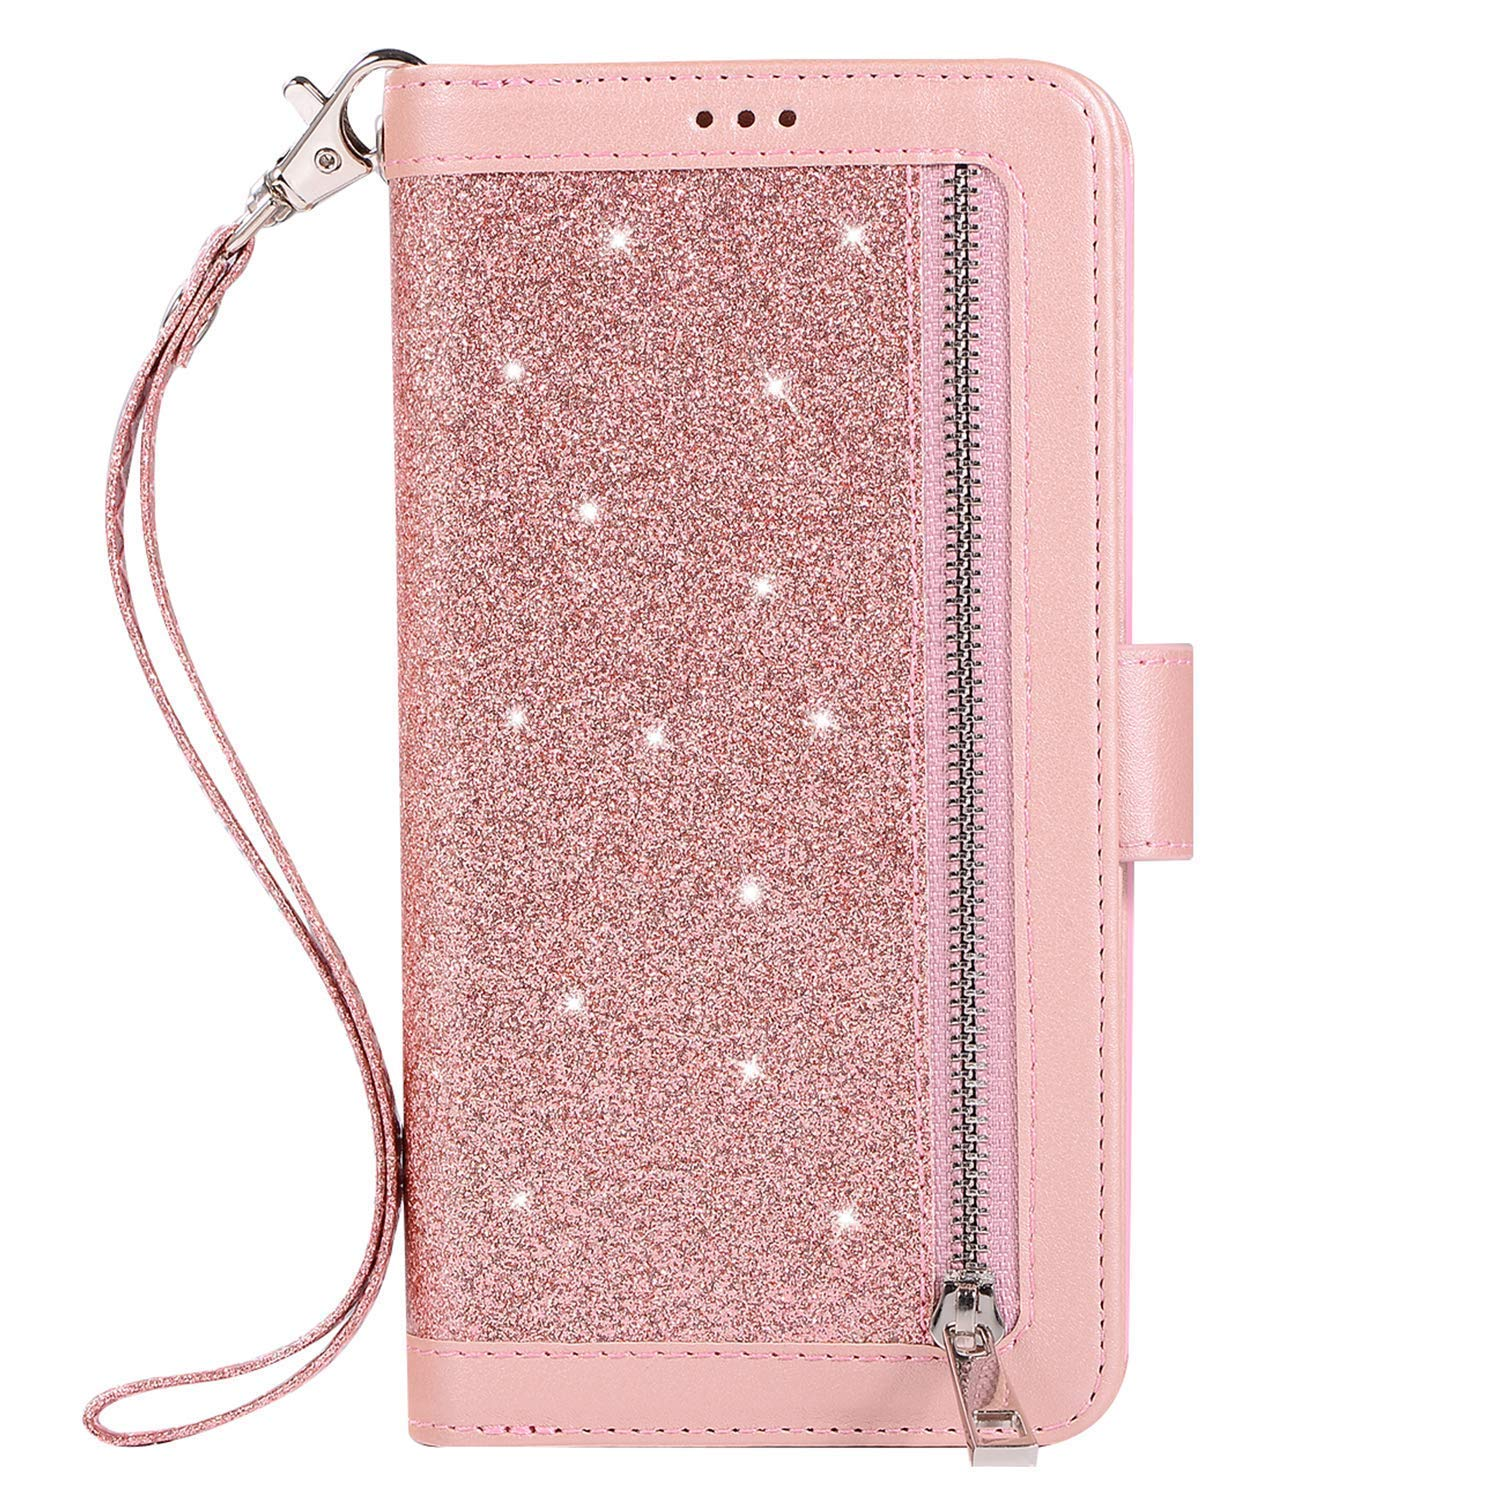 Herbests Compatible with Samsung Galaxy S10 Plus Wallet Case Zipper Luxury Bling Glitter Shockproof Protective Leather Flip Cover 9 Card Slots Magnetic Phone Cover & Strap Kickstand,Rose Gold